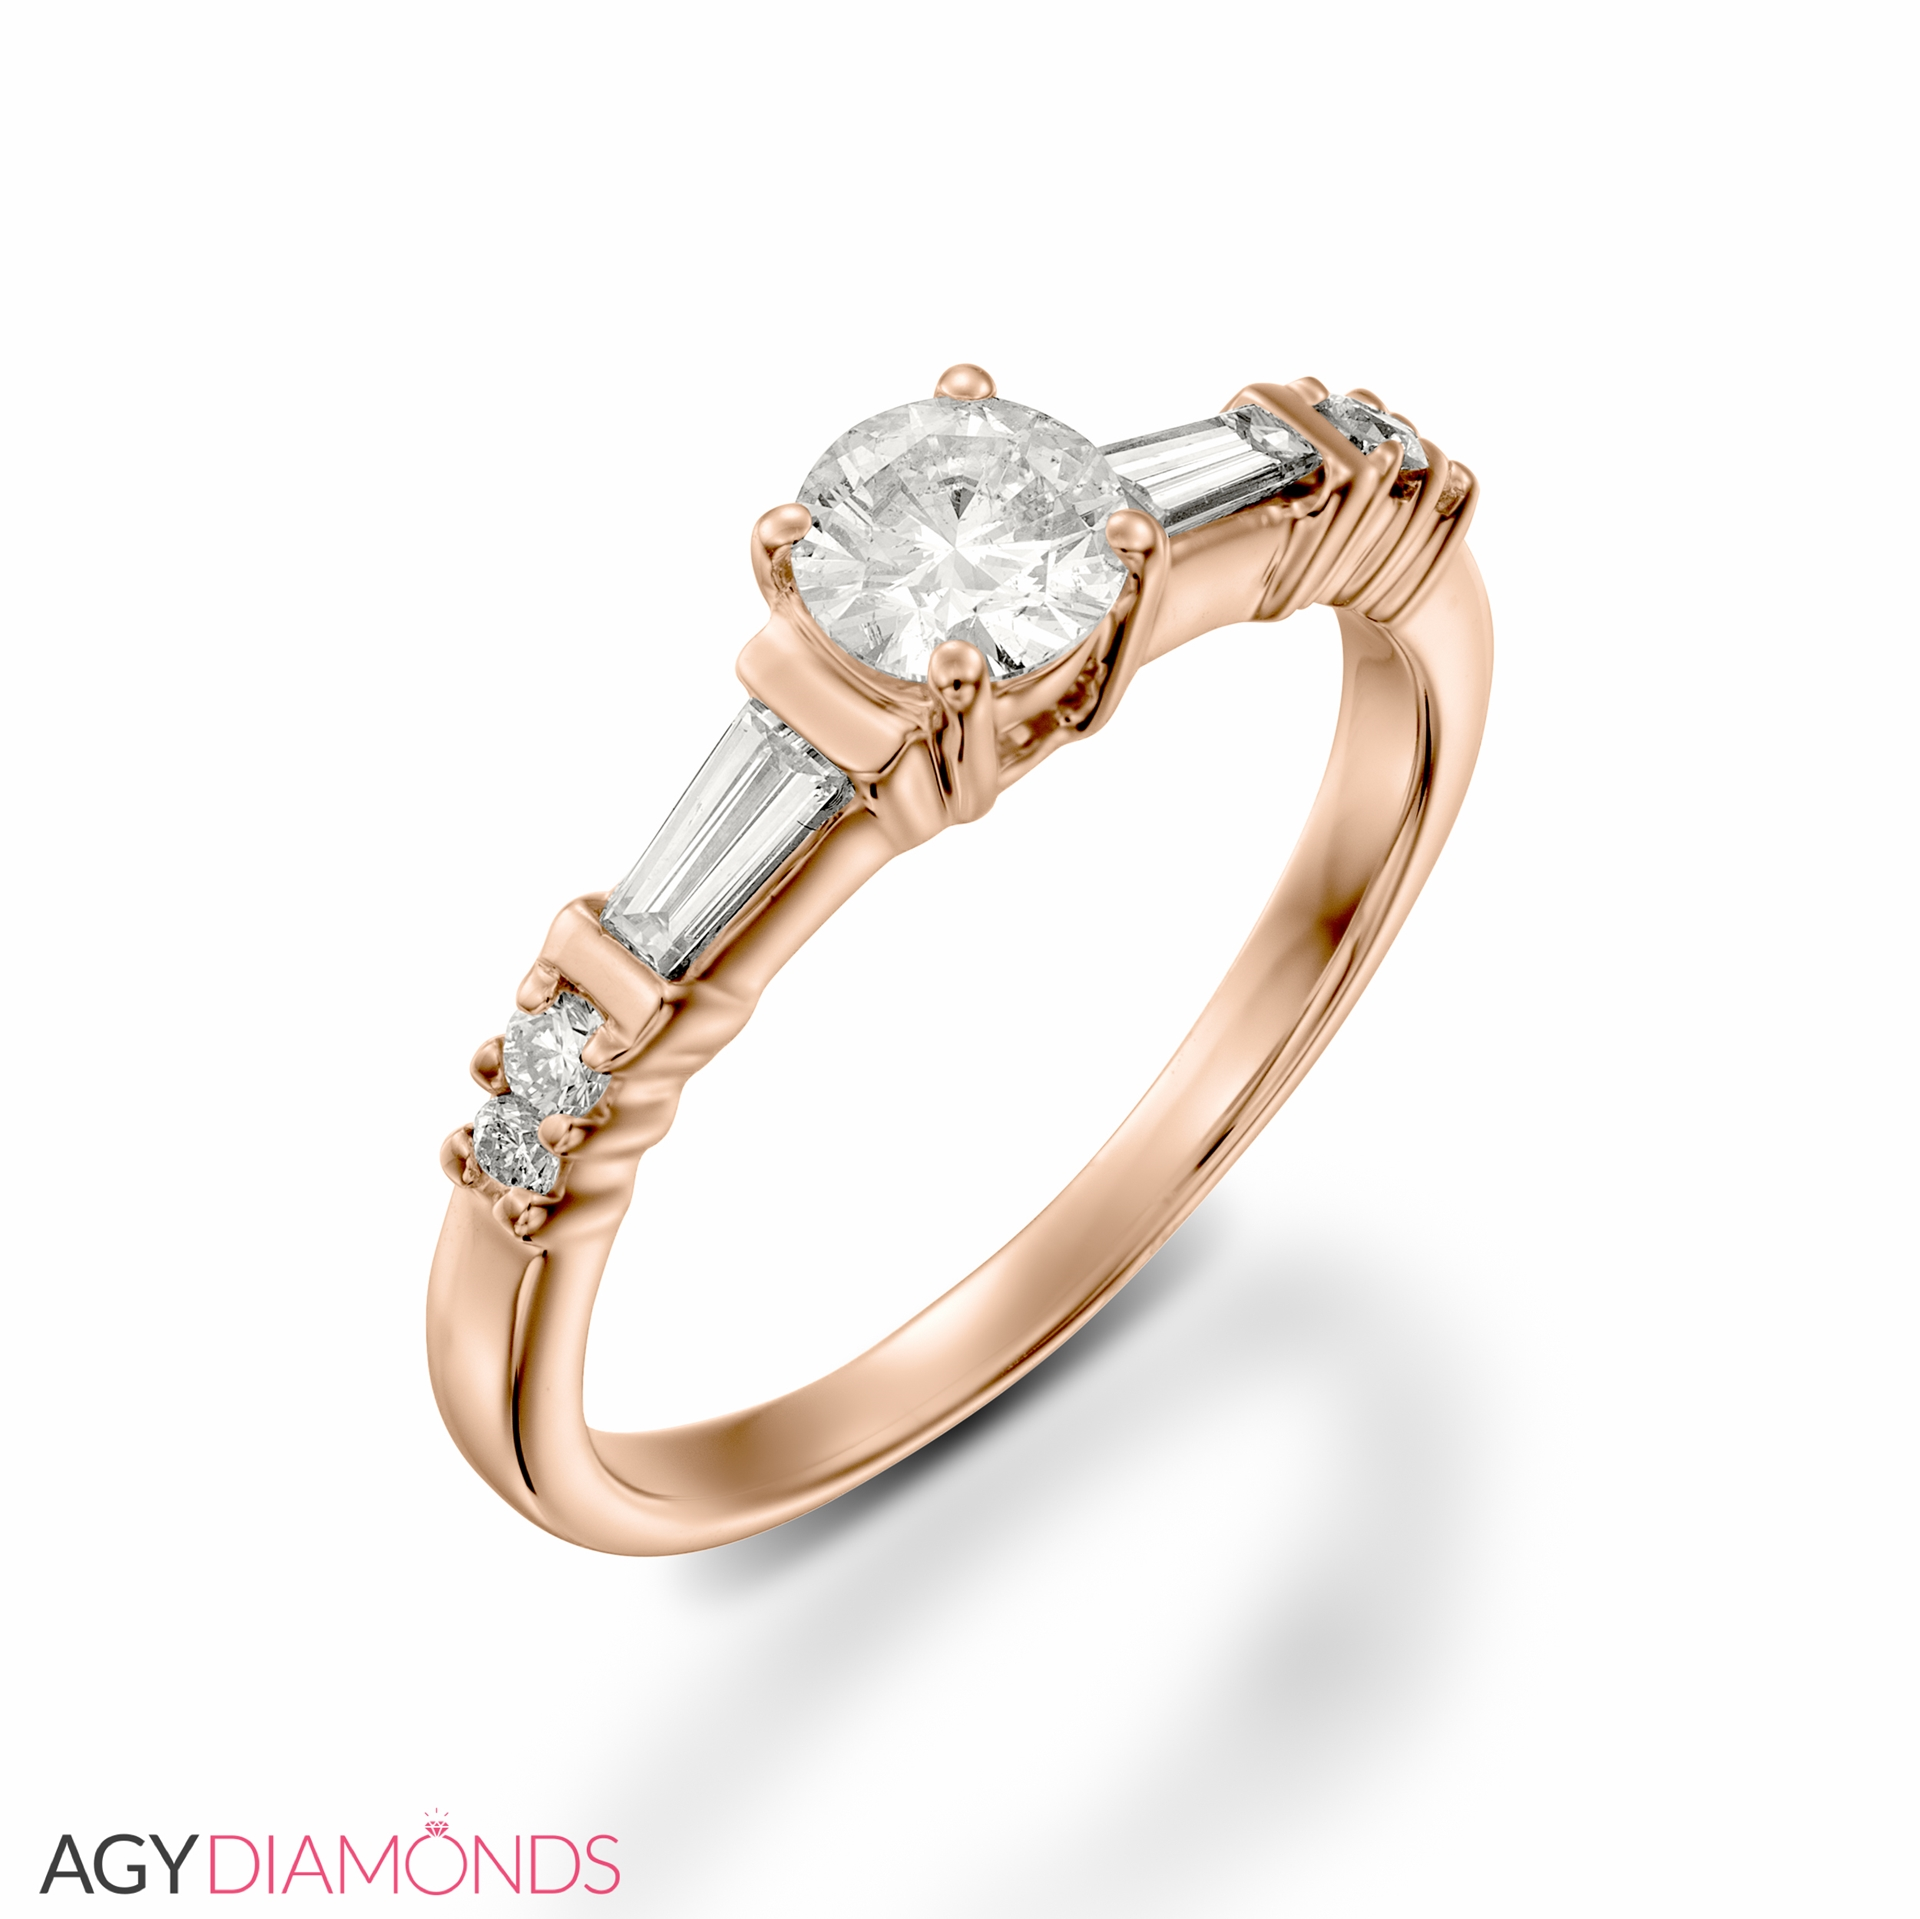 wedding artemer rings lineup band finger engagement on ring diamonds products dainty diamond baguette